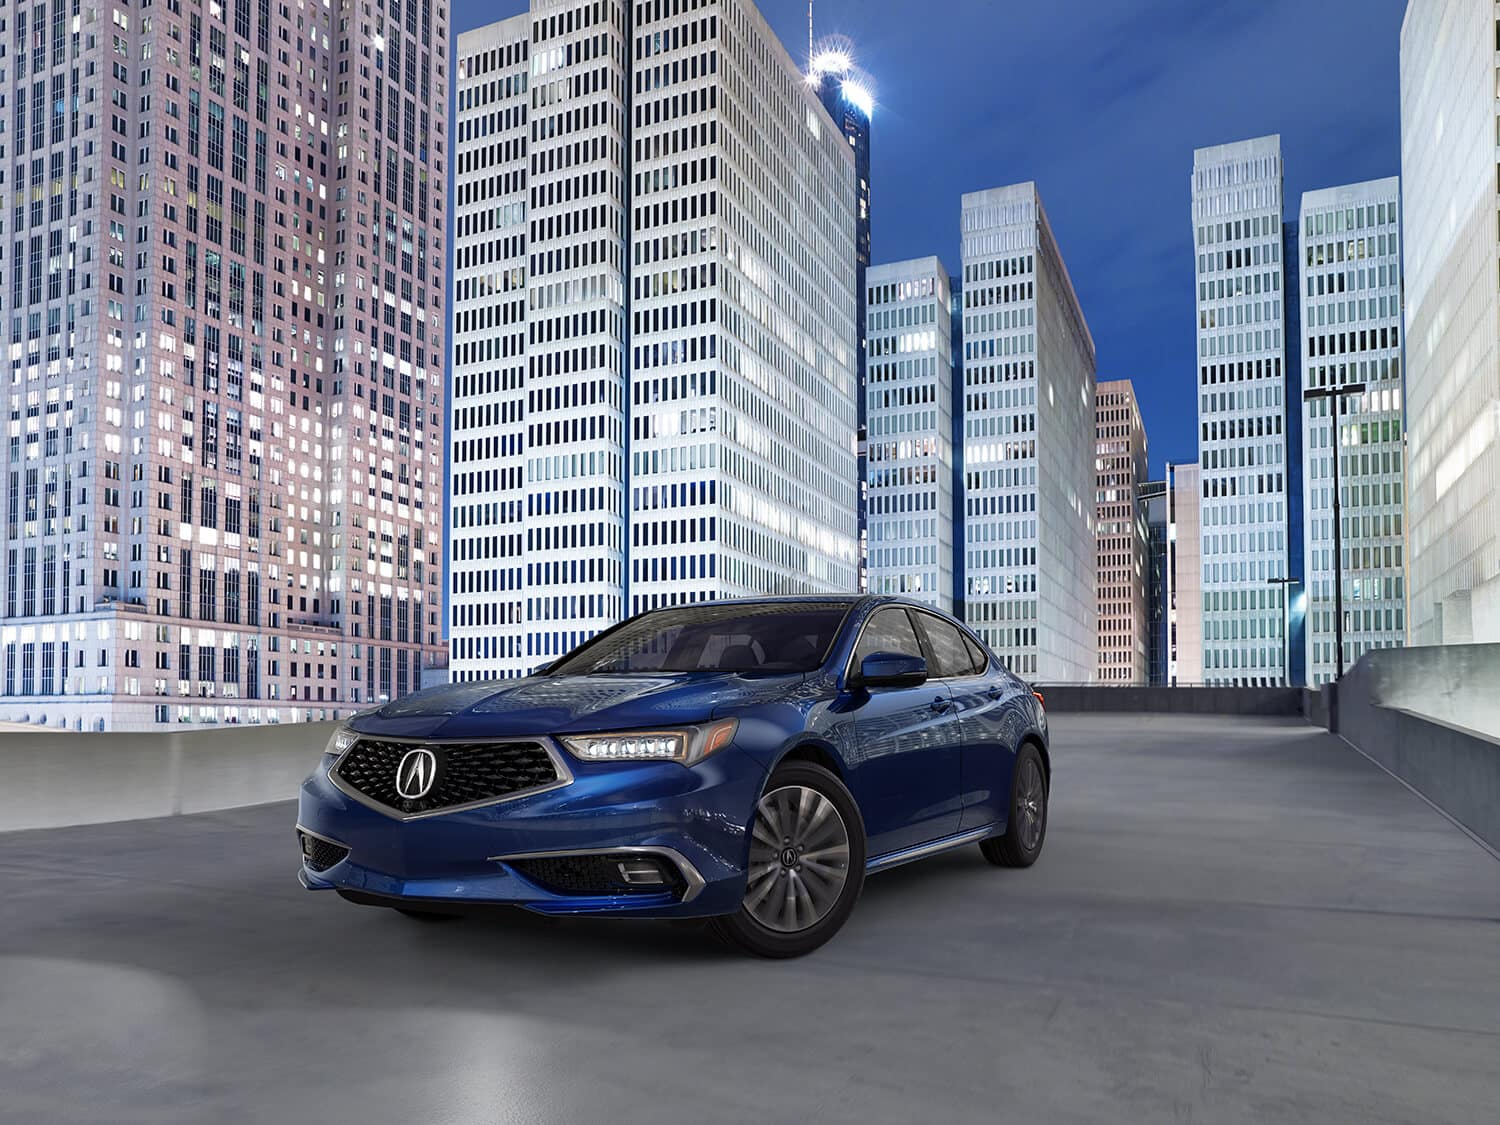 2020 Acura TLX Exterior Front Angle Driver Side Cityscape